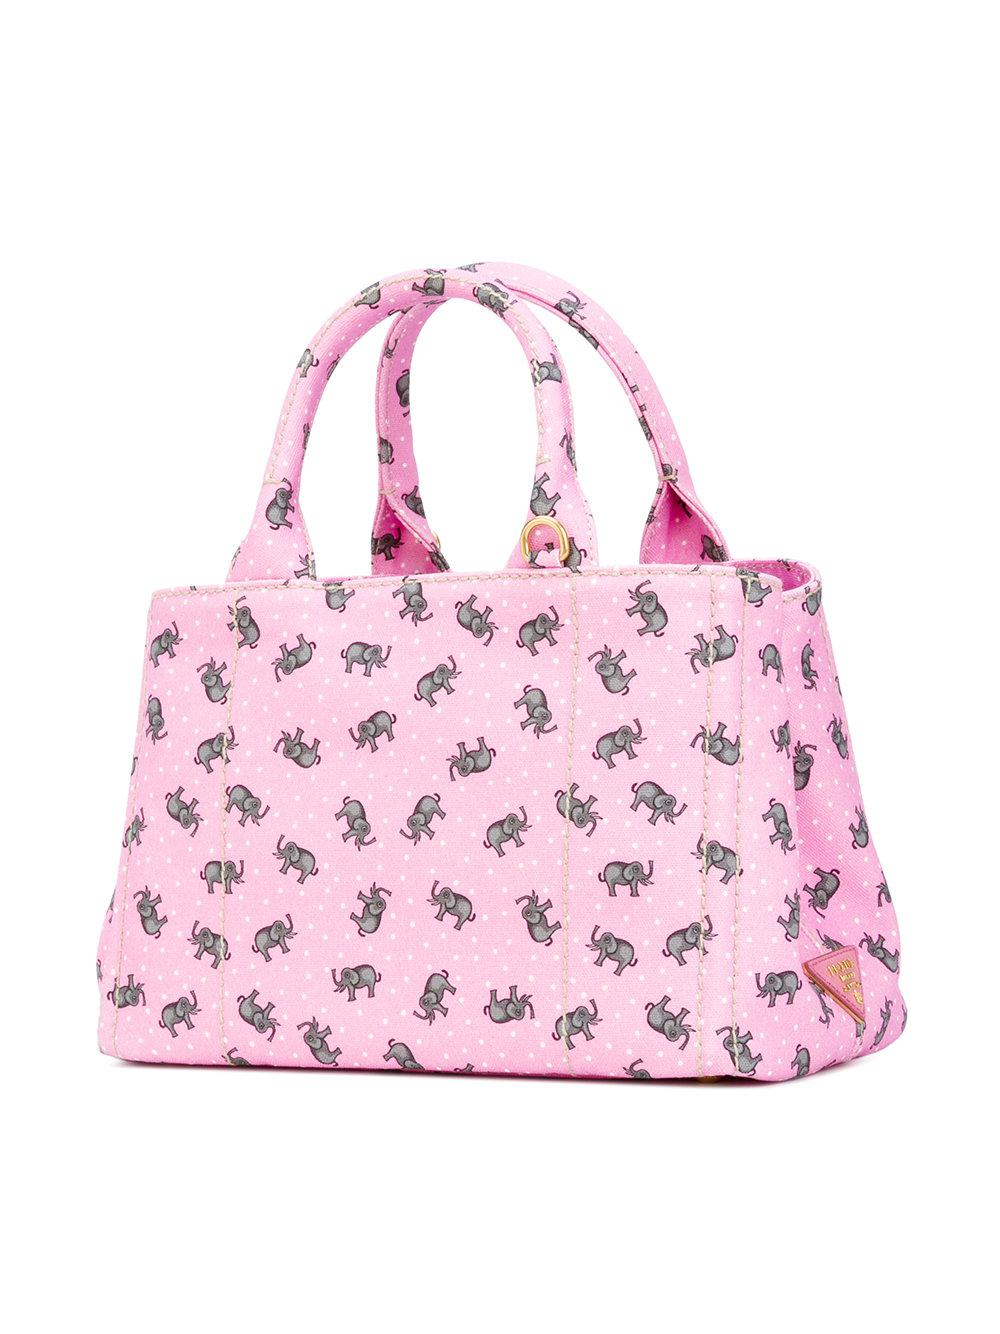 04eb4ae73b Prada - Elephants Print Tote - Women - Cotton - One Size in Pink - Lyst